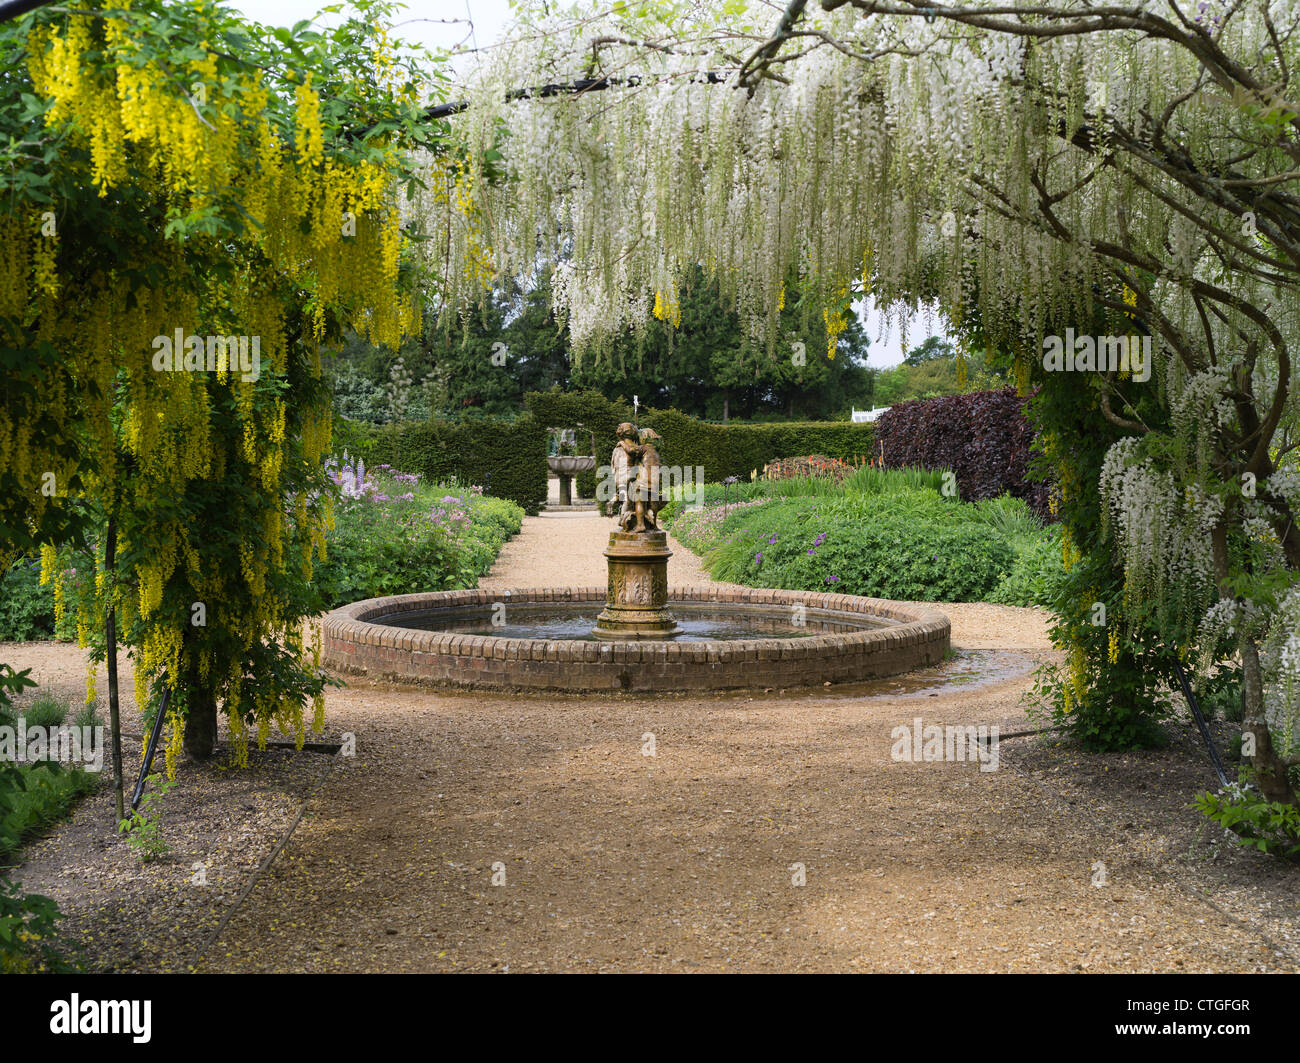 Captivating Dh Victorian Flower Garden BEAULIEU HAMPSHIRE Fountain Pond White And  Yellow Laburnum Flower Arch